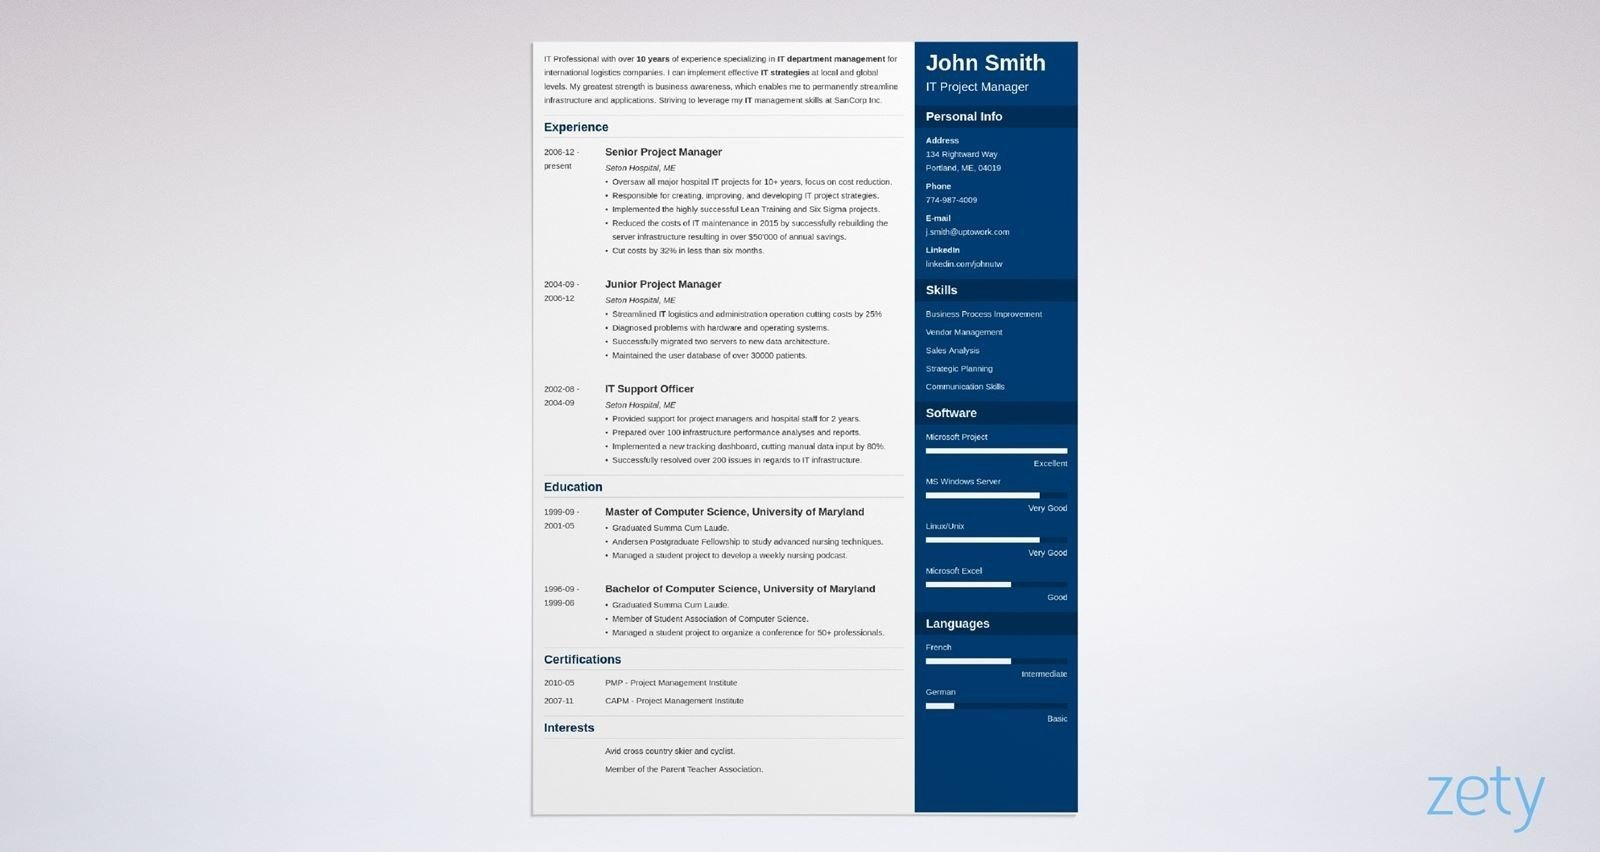 best resume templates for top picks to template free impressive words reference sheet Resume Cascade Resume Template Free